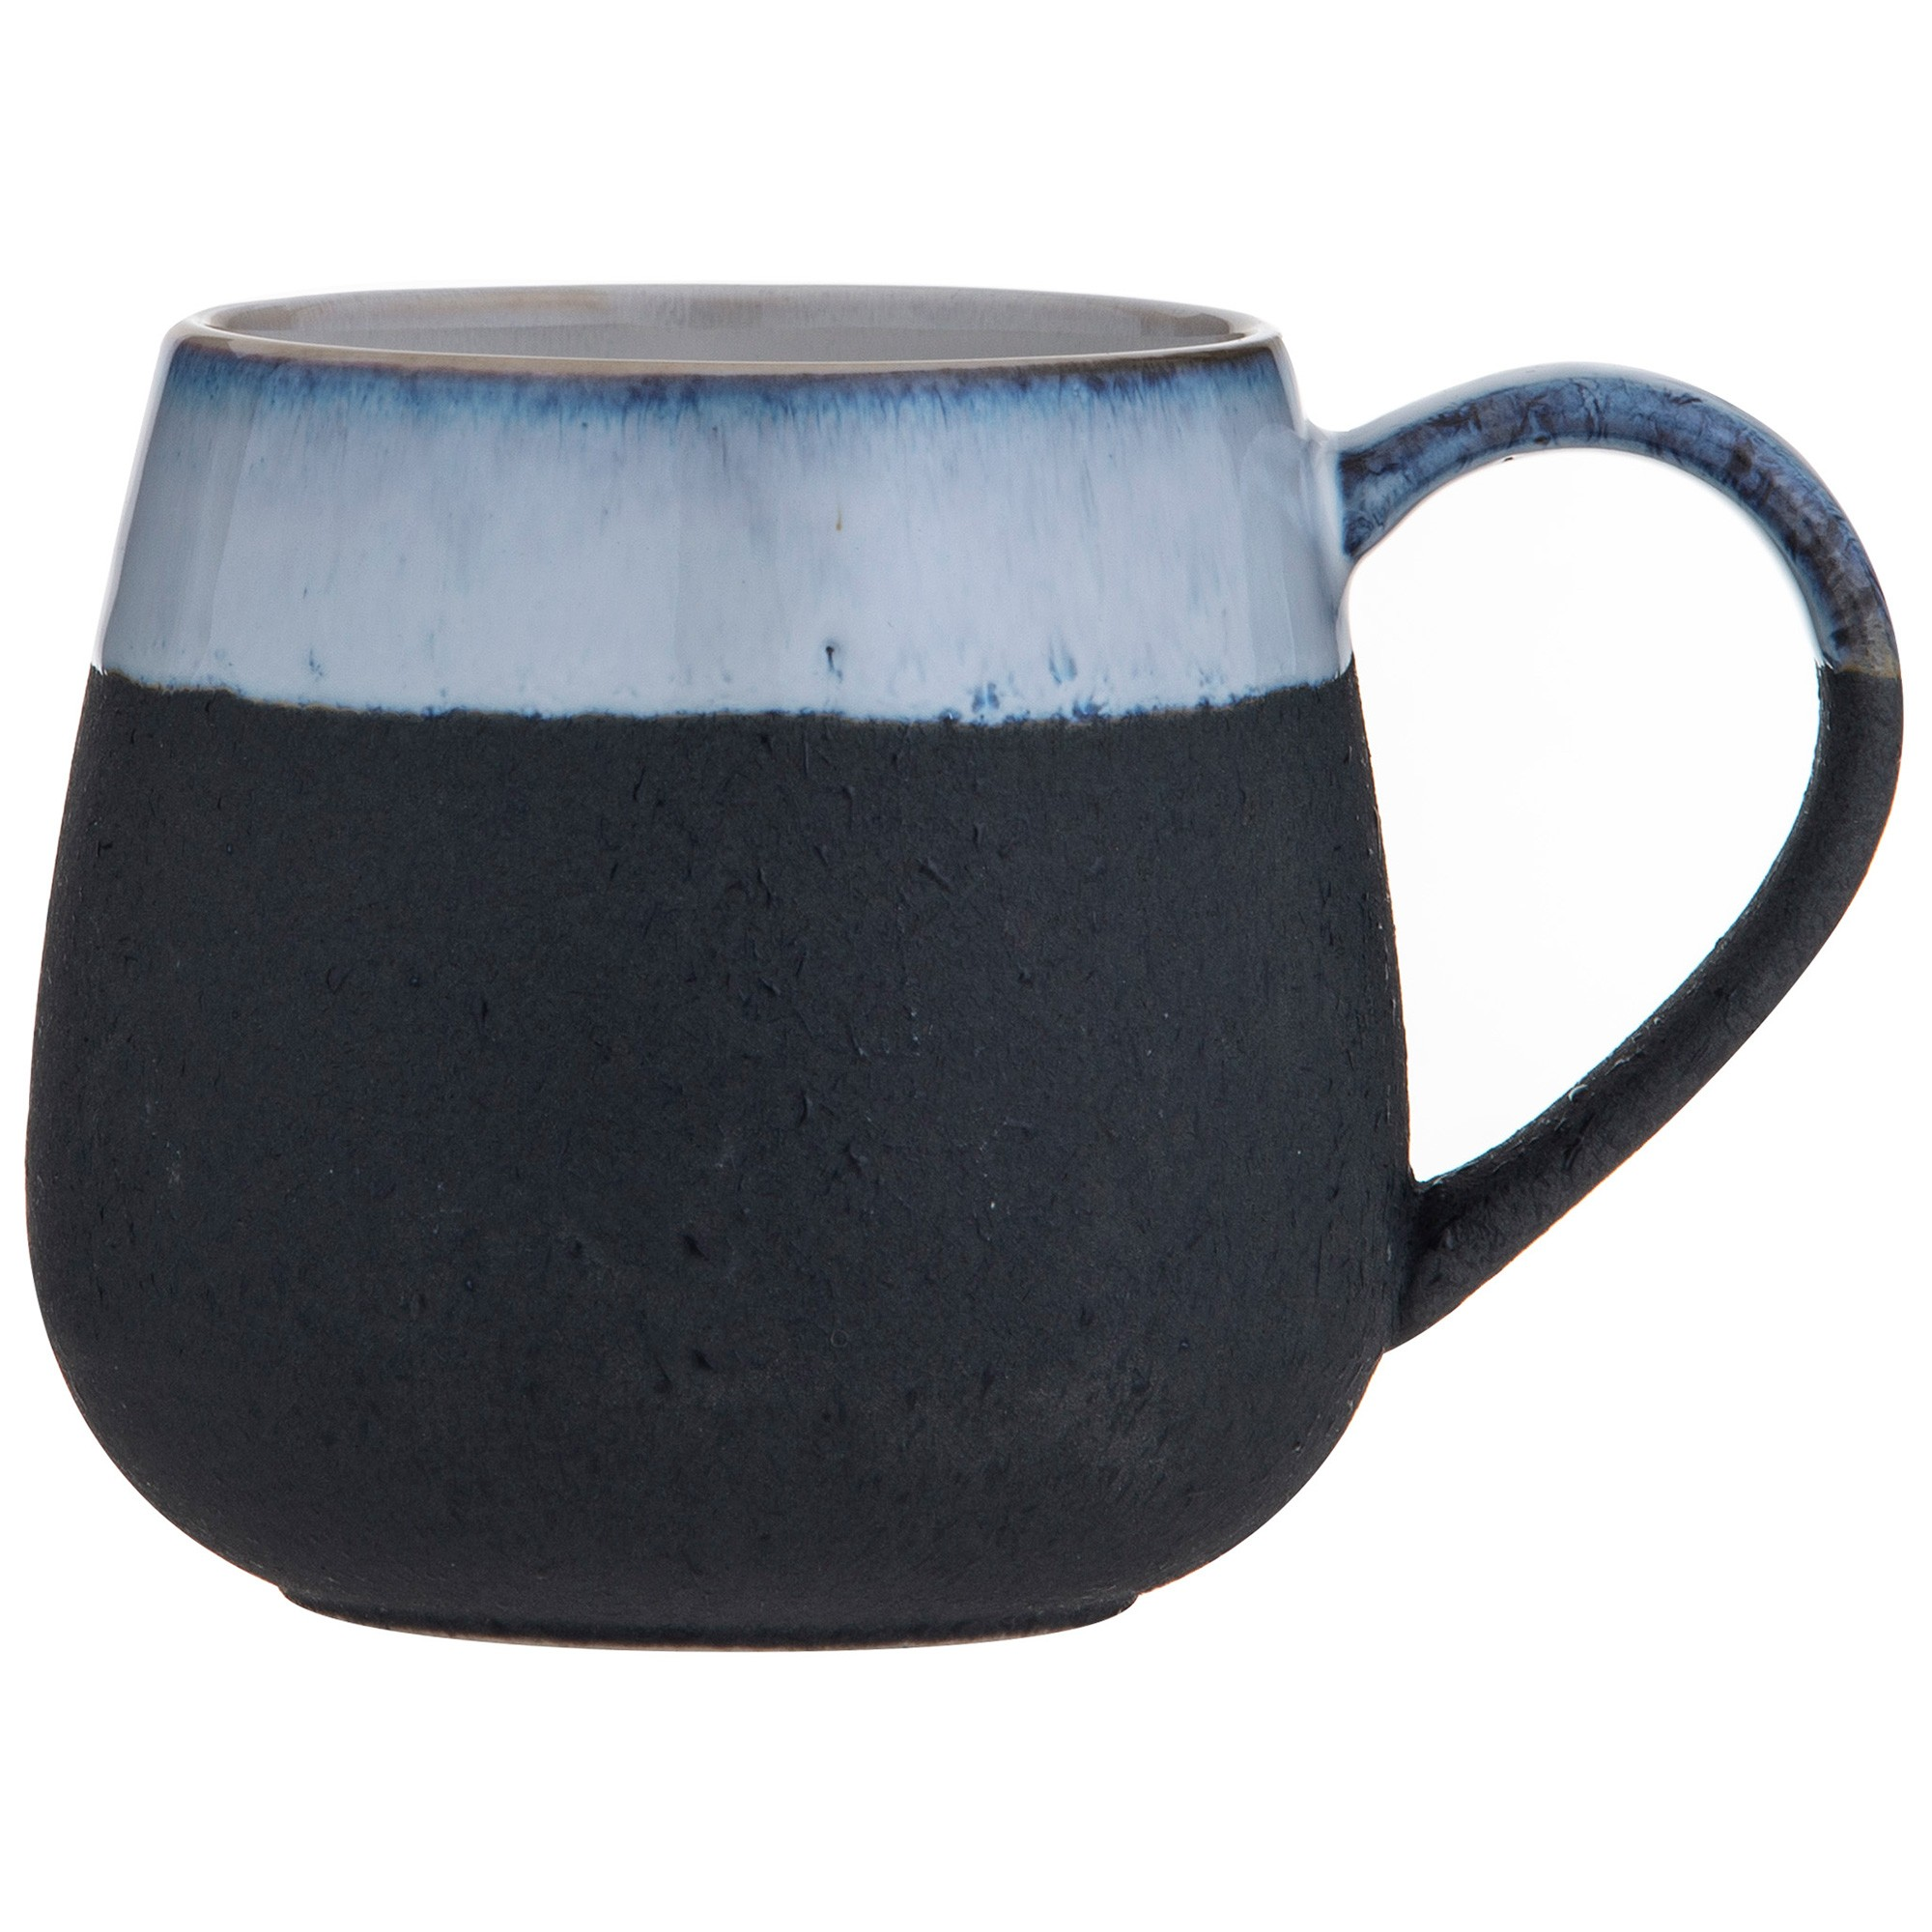 Leaf & Bean Milan Reactive Glaze Ceramic Mug, Black